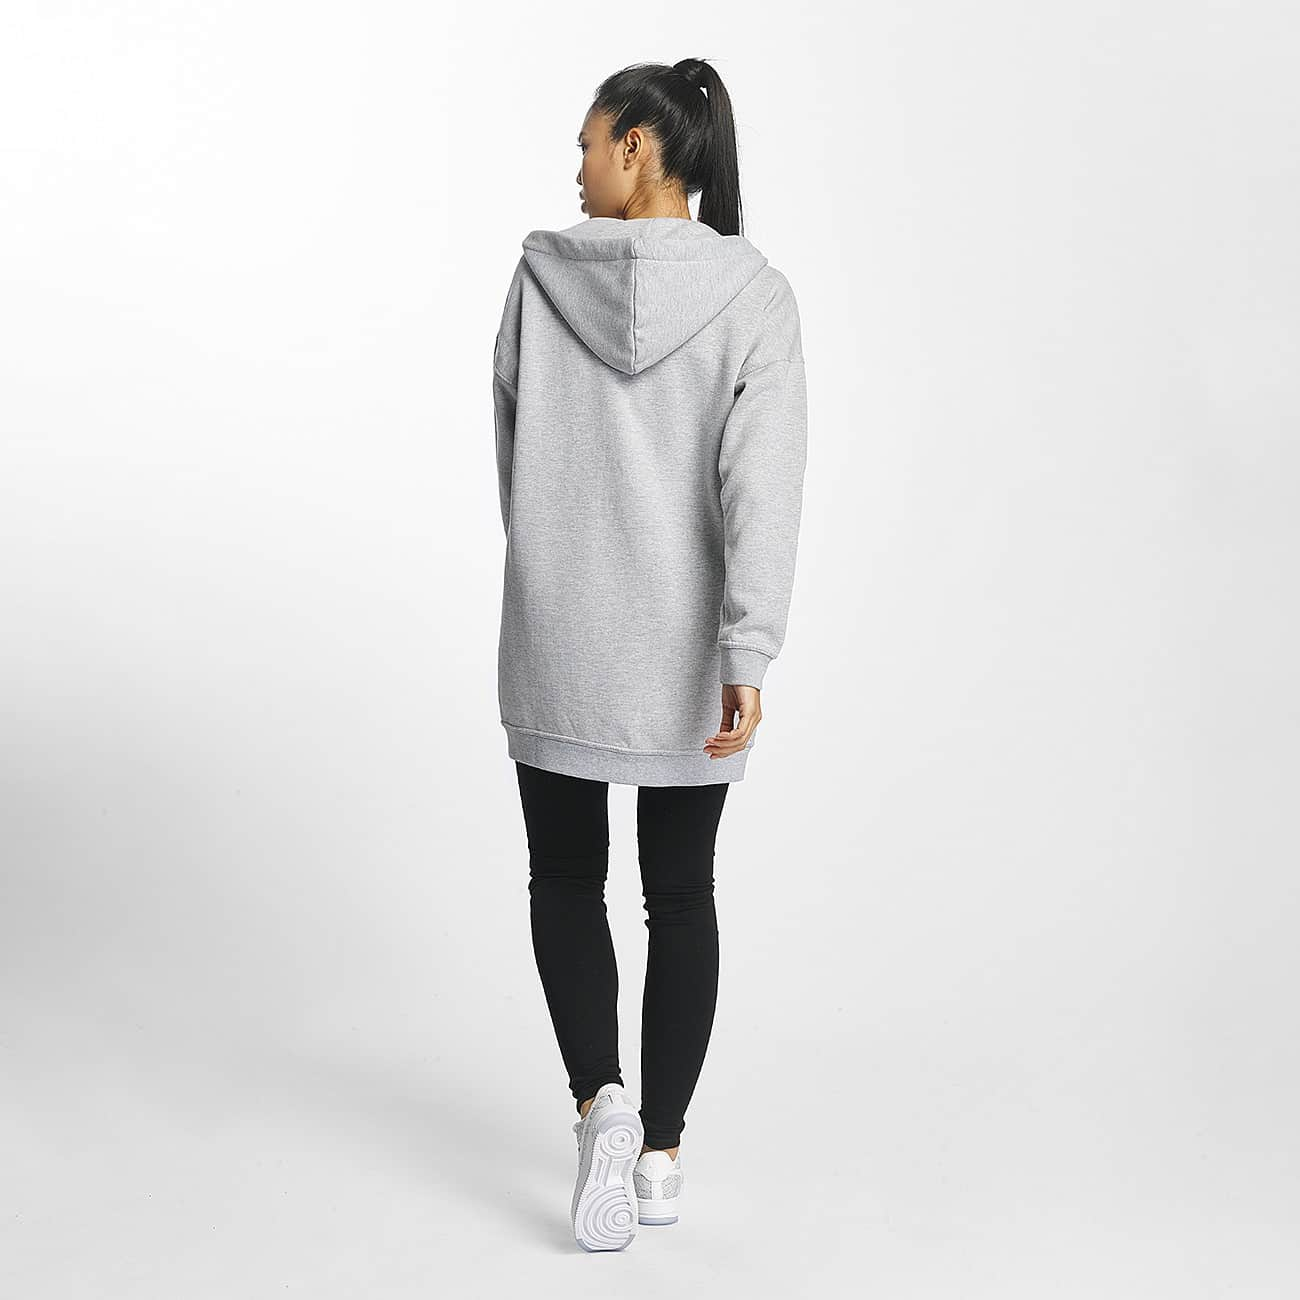 Cyprime / Zip Hoodie Roentgenium in grey - Streetscenter